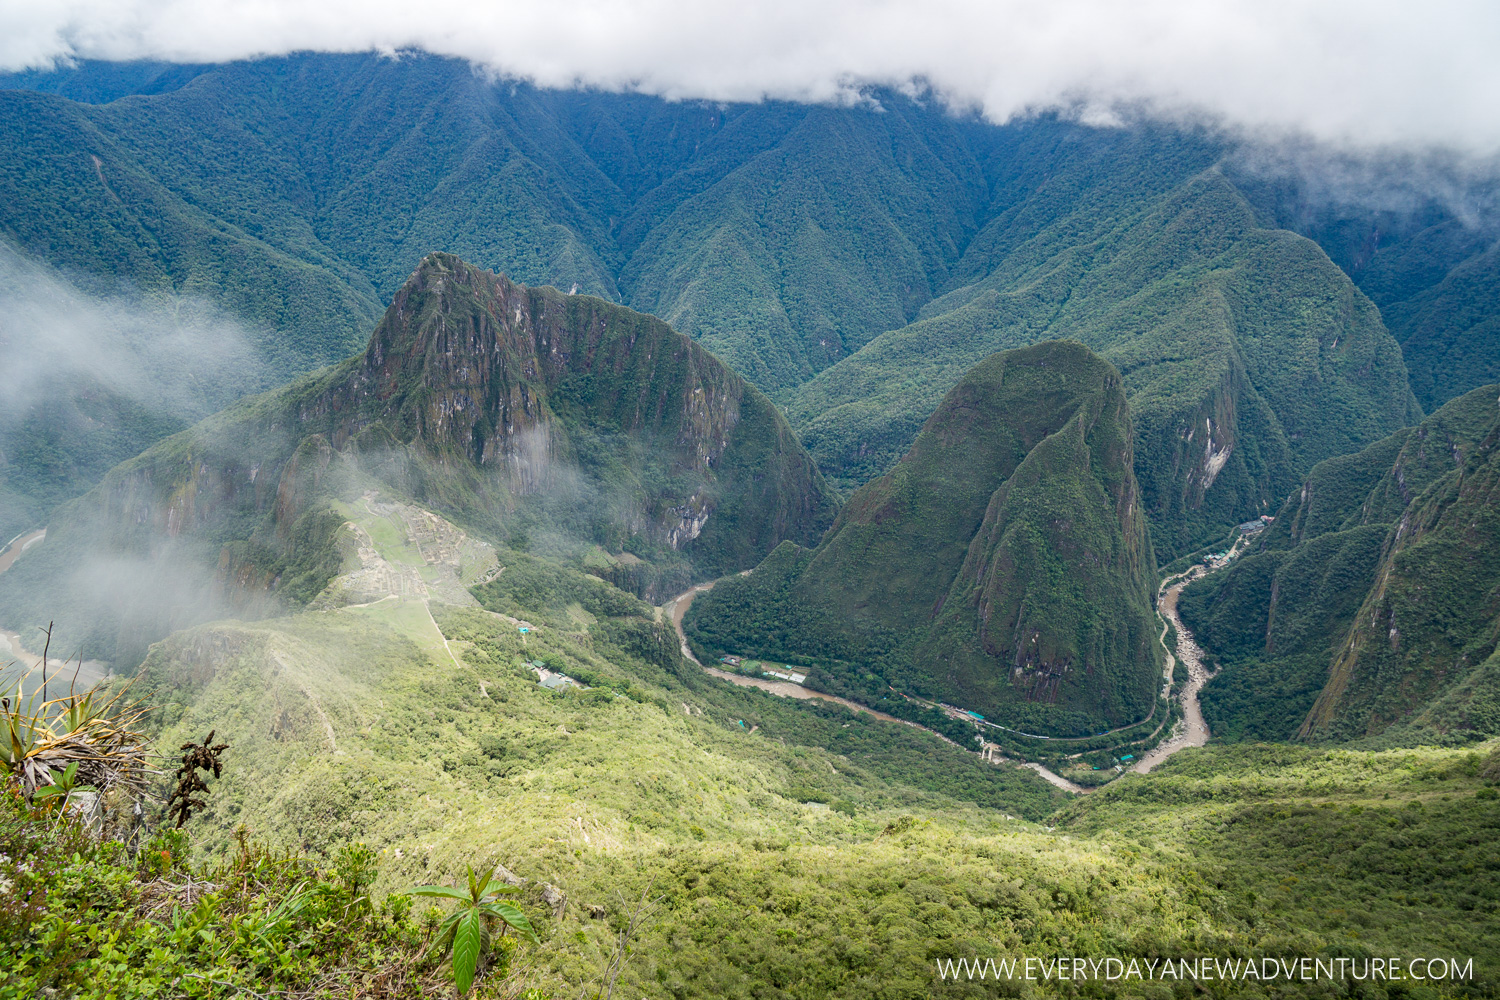 The view from the top of Machu Picchu Mountain.